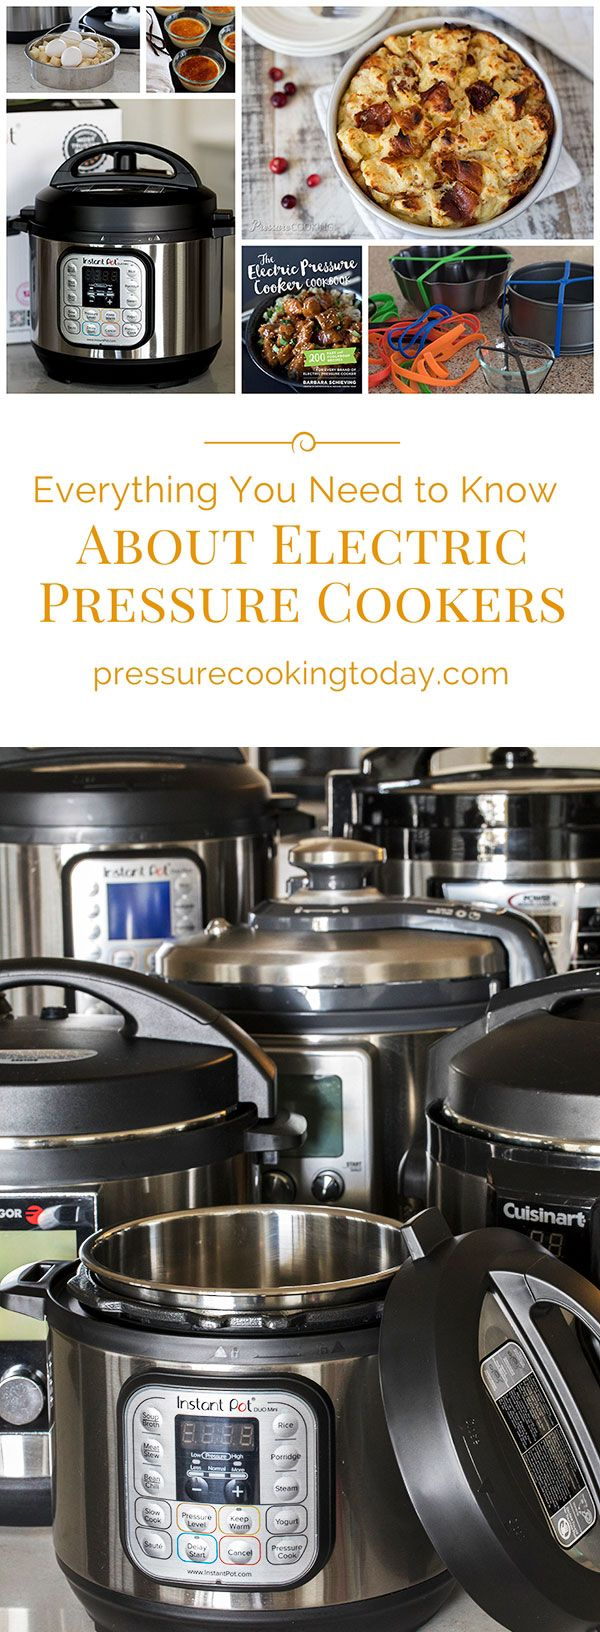 Want to learn how to use an Instant Pot or other multicooker? Here's everything you need to know about electric pressure cookers, plus reviews and recipes! . . #pressurecooking #gettingstarted #instantpot